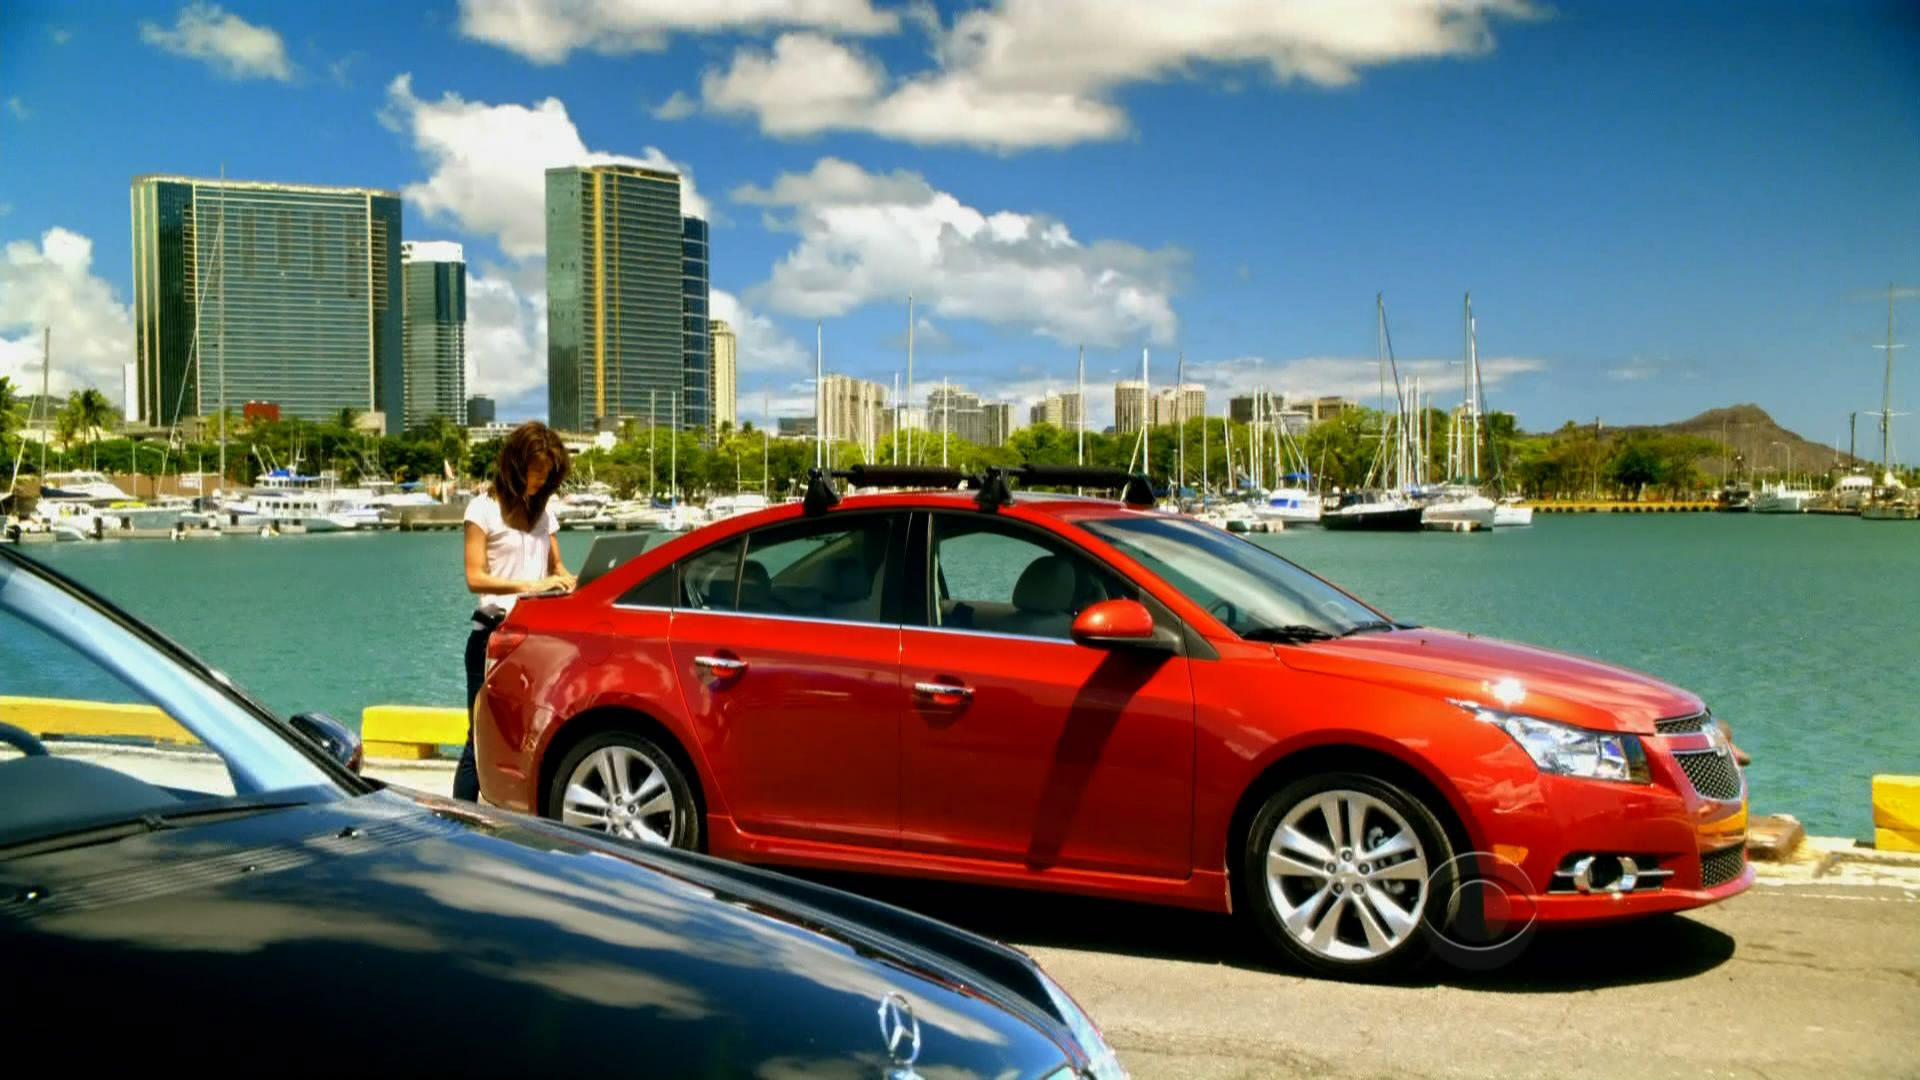 Used Cars Hawaii >> The Cars of Hawaii Five-0 | The Autocracy